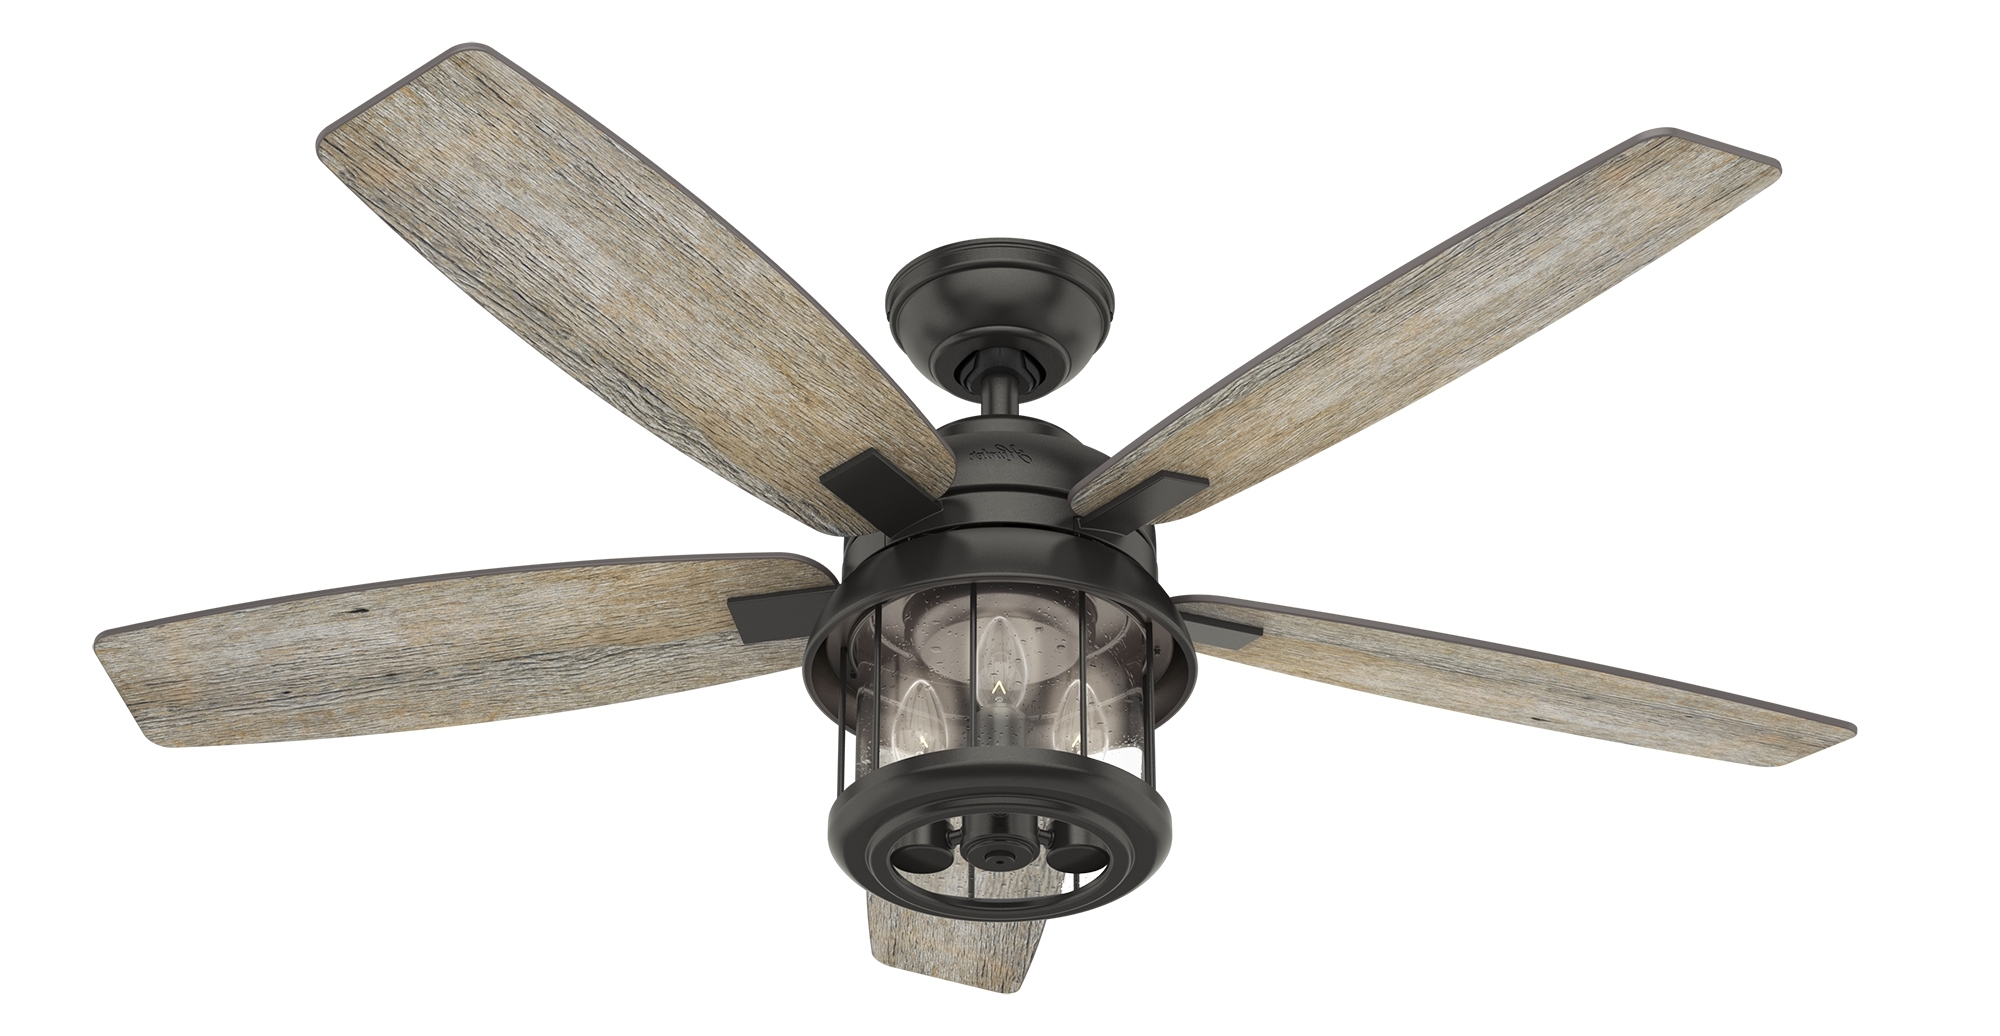 2019 Create A Seaside Vibe With Coastal Ceiling Fans – Hunter Fan Blog Regarding Coastal Outdoor Ceiling Fans (View 9 of 20)